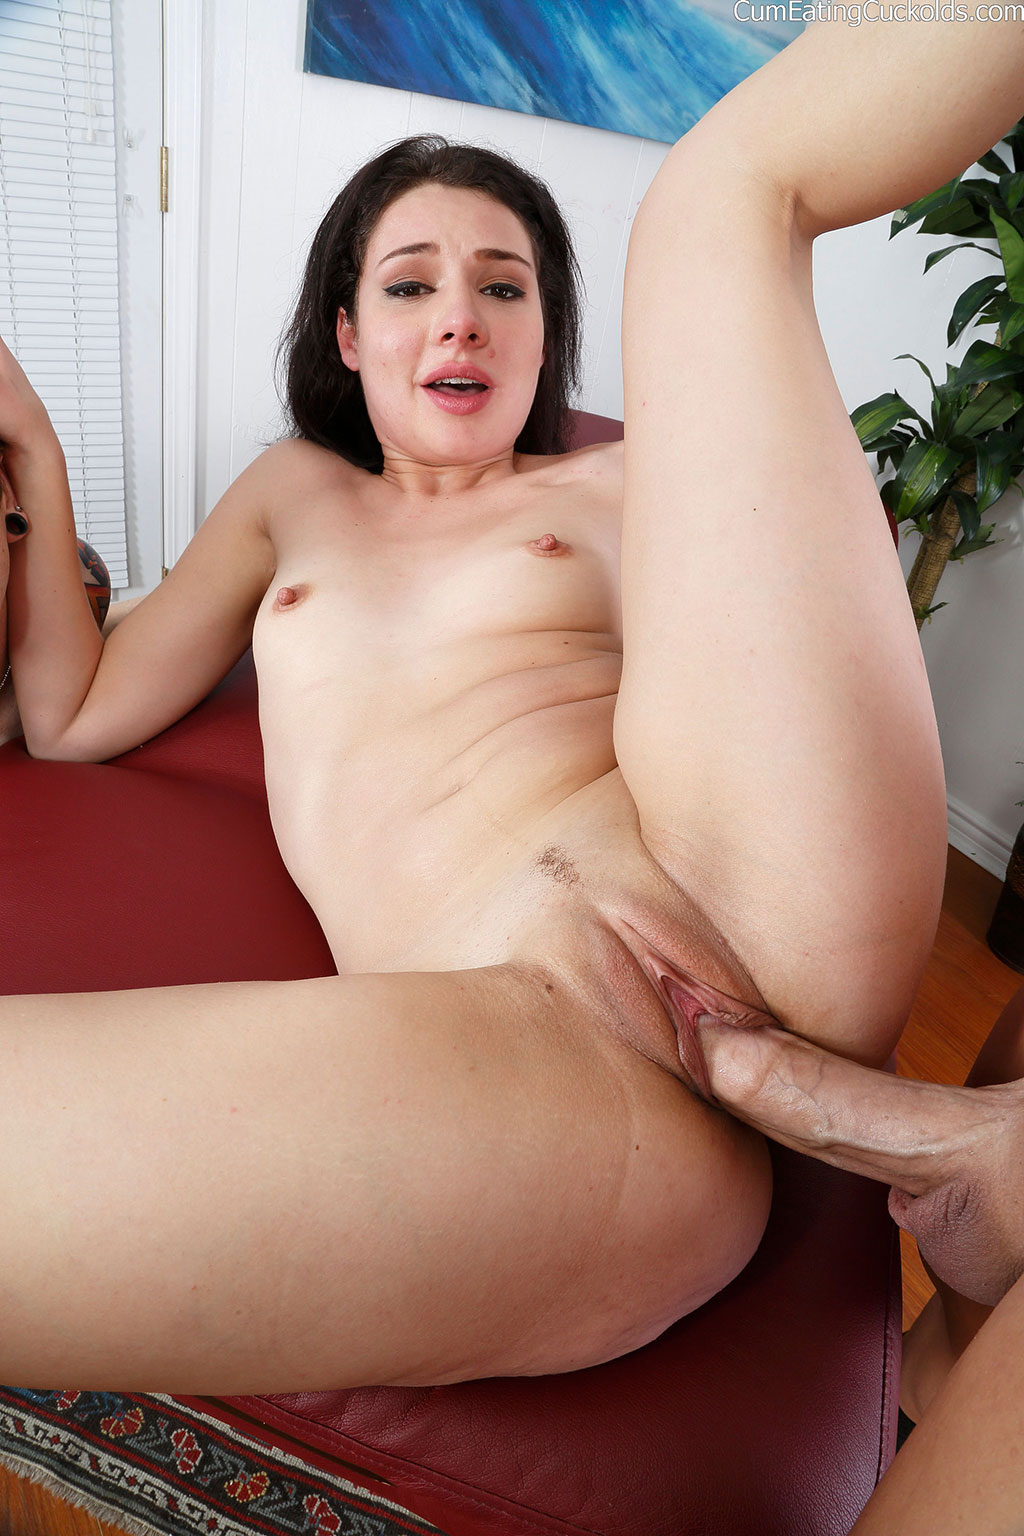 Izzy champagne gets a creampie after your pov virtual date Part 8 9